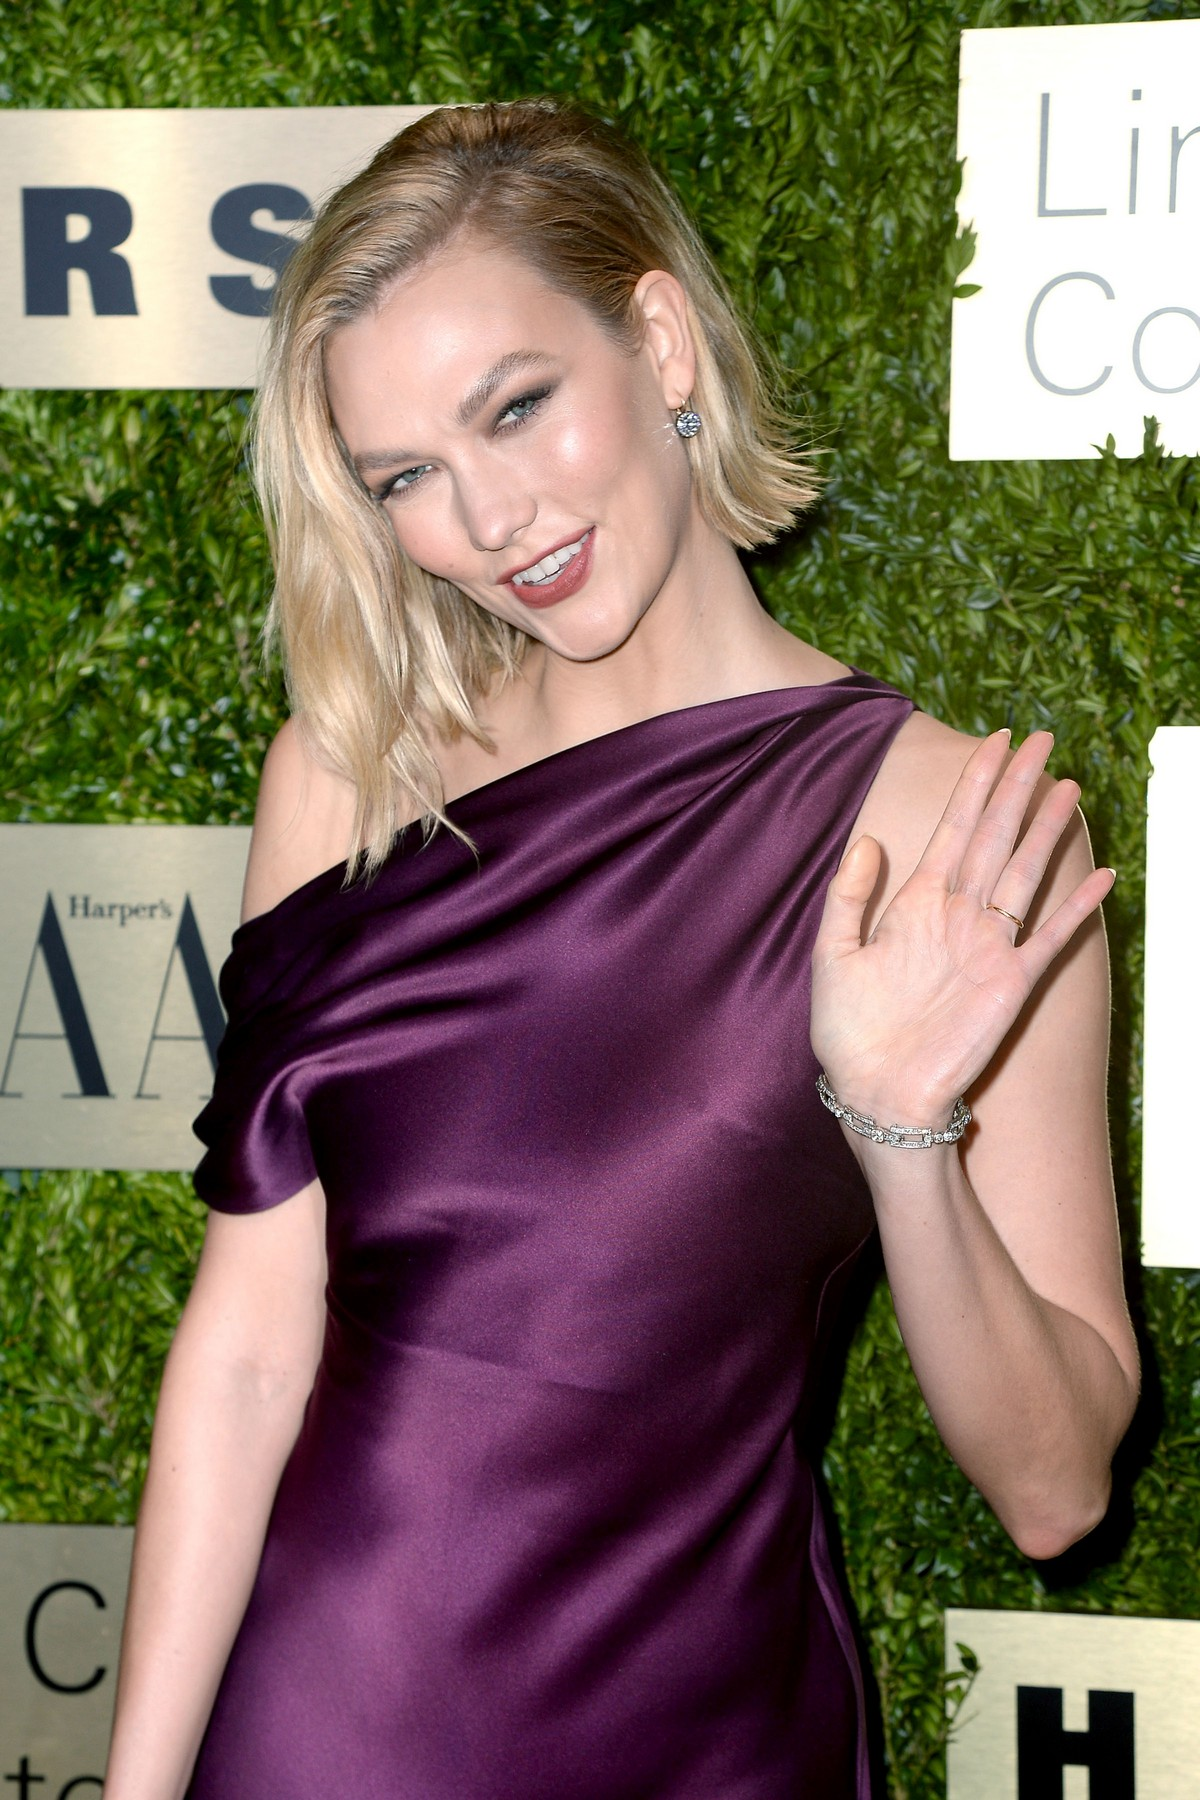 Karlie Kloss attends Lincoln Center Corporate Fashion Fund Gala in New York City 2019/11/18 9